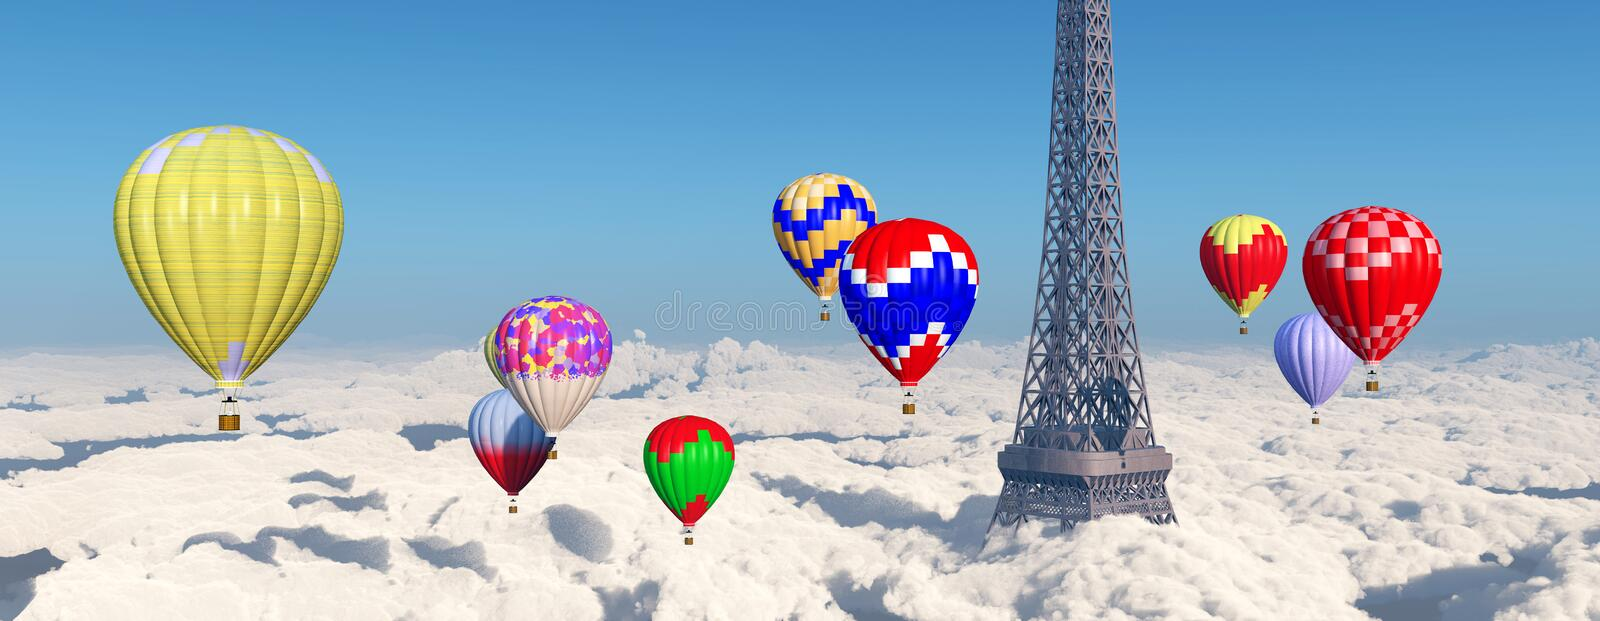 Eiffel Tower and hot air balloons. Computer generated 3D illustration with Eiffel Tower and hot air balloons above the clouds stock illustration